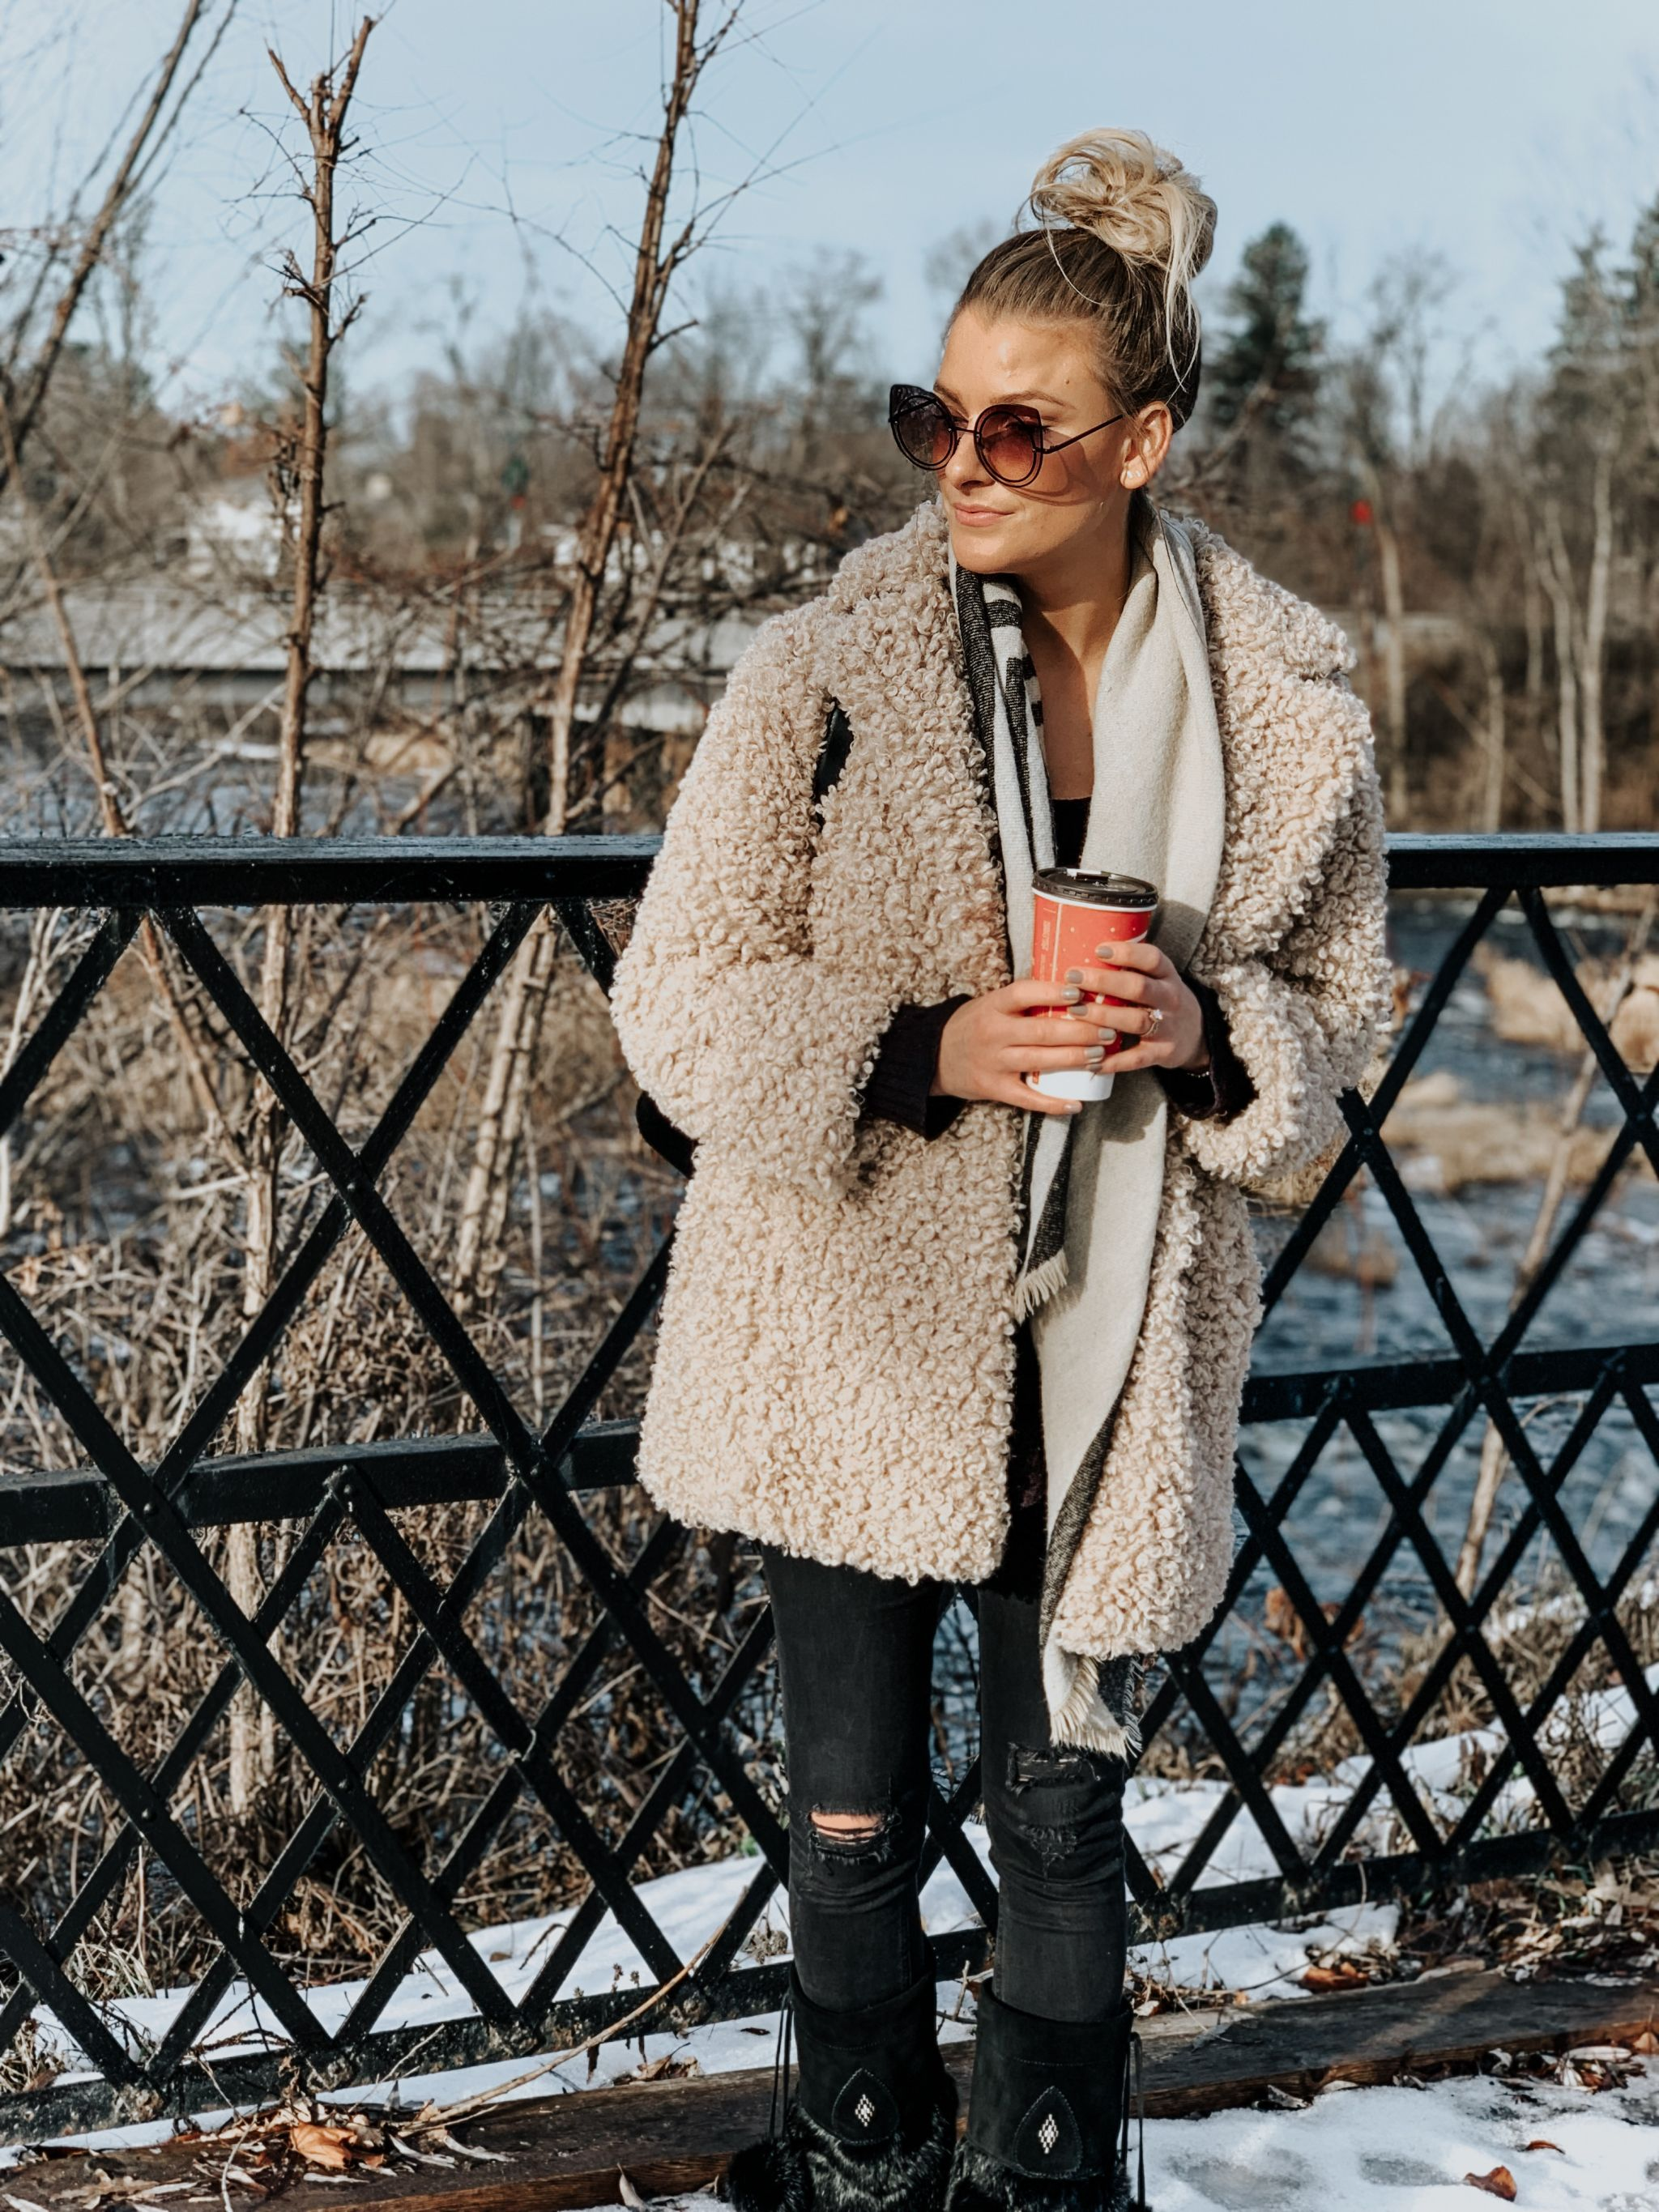 teddy coat outfit ideas, 1 person, girl wearing teddy coat in winter